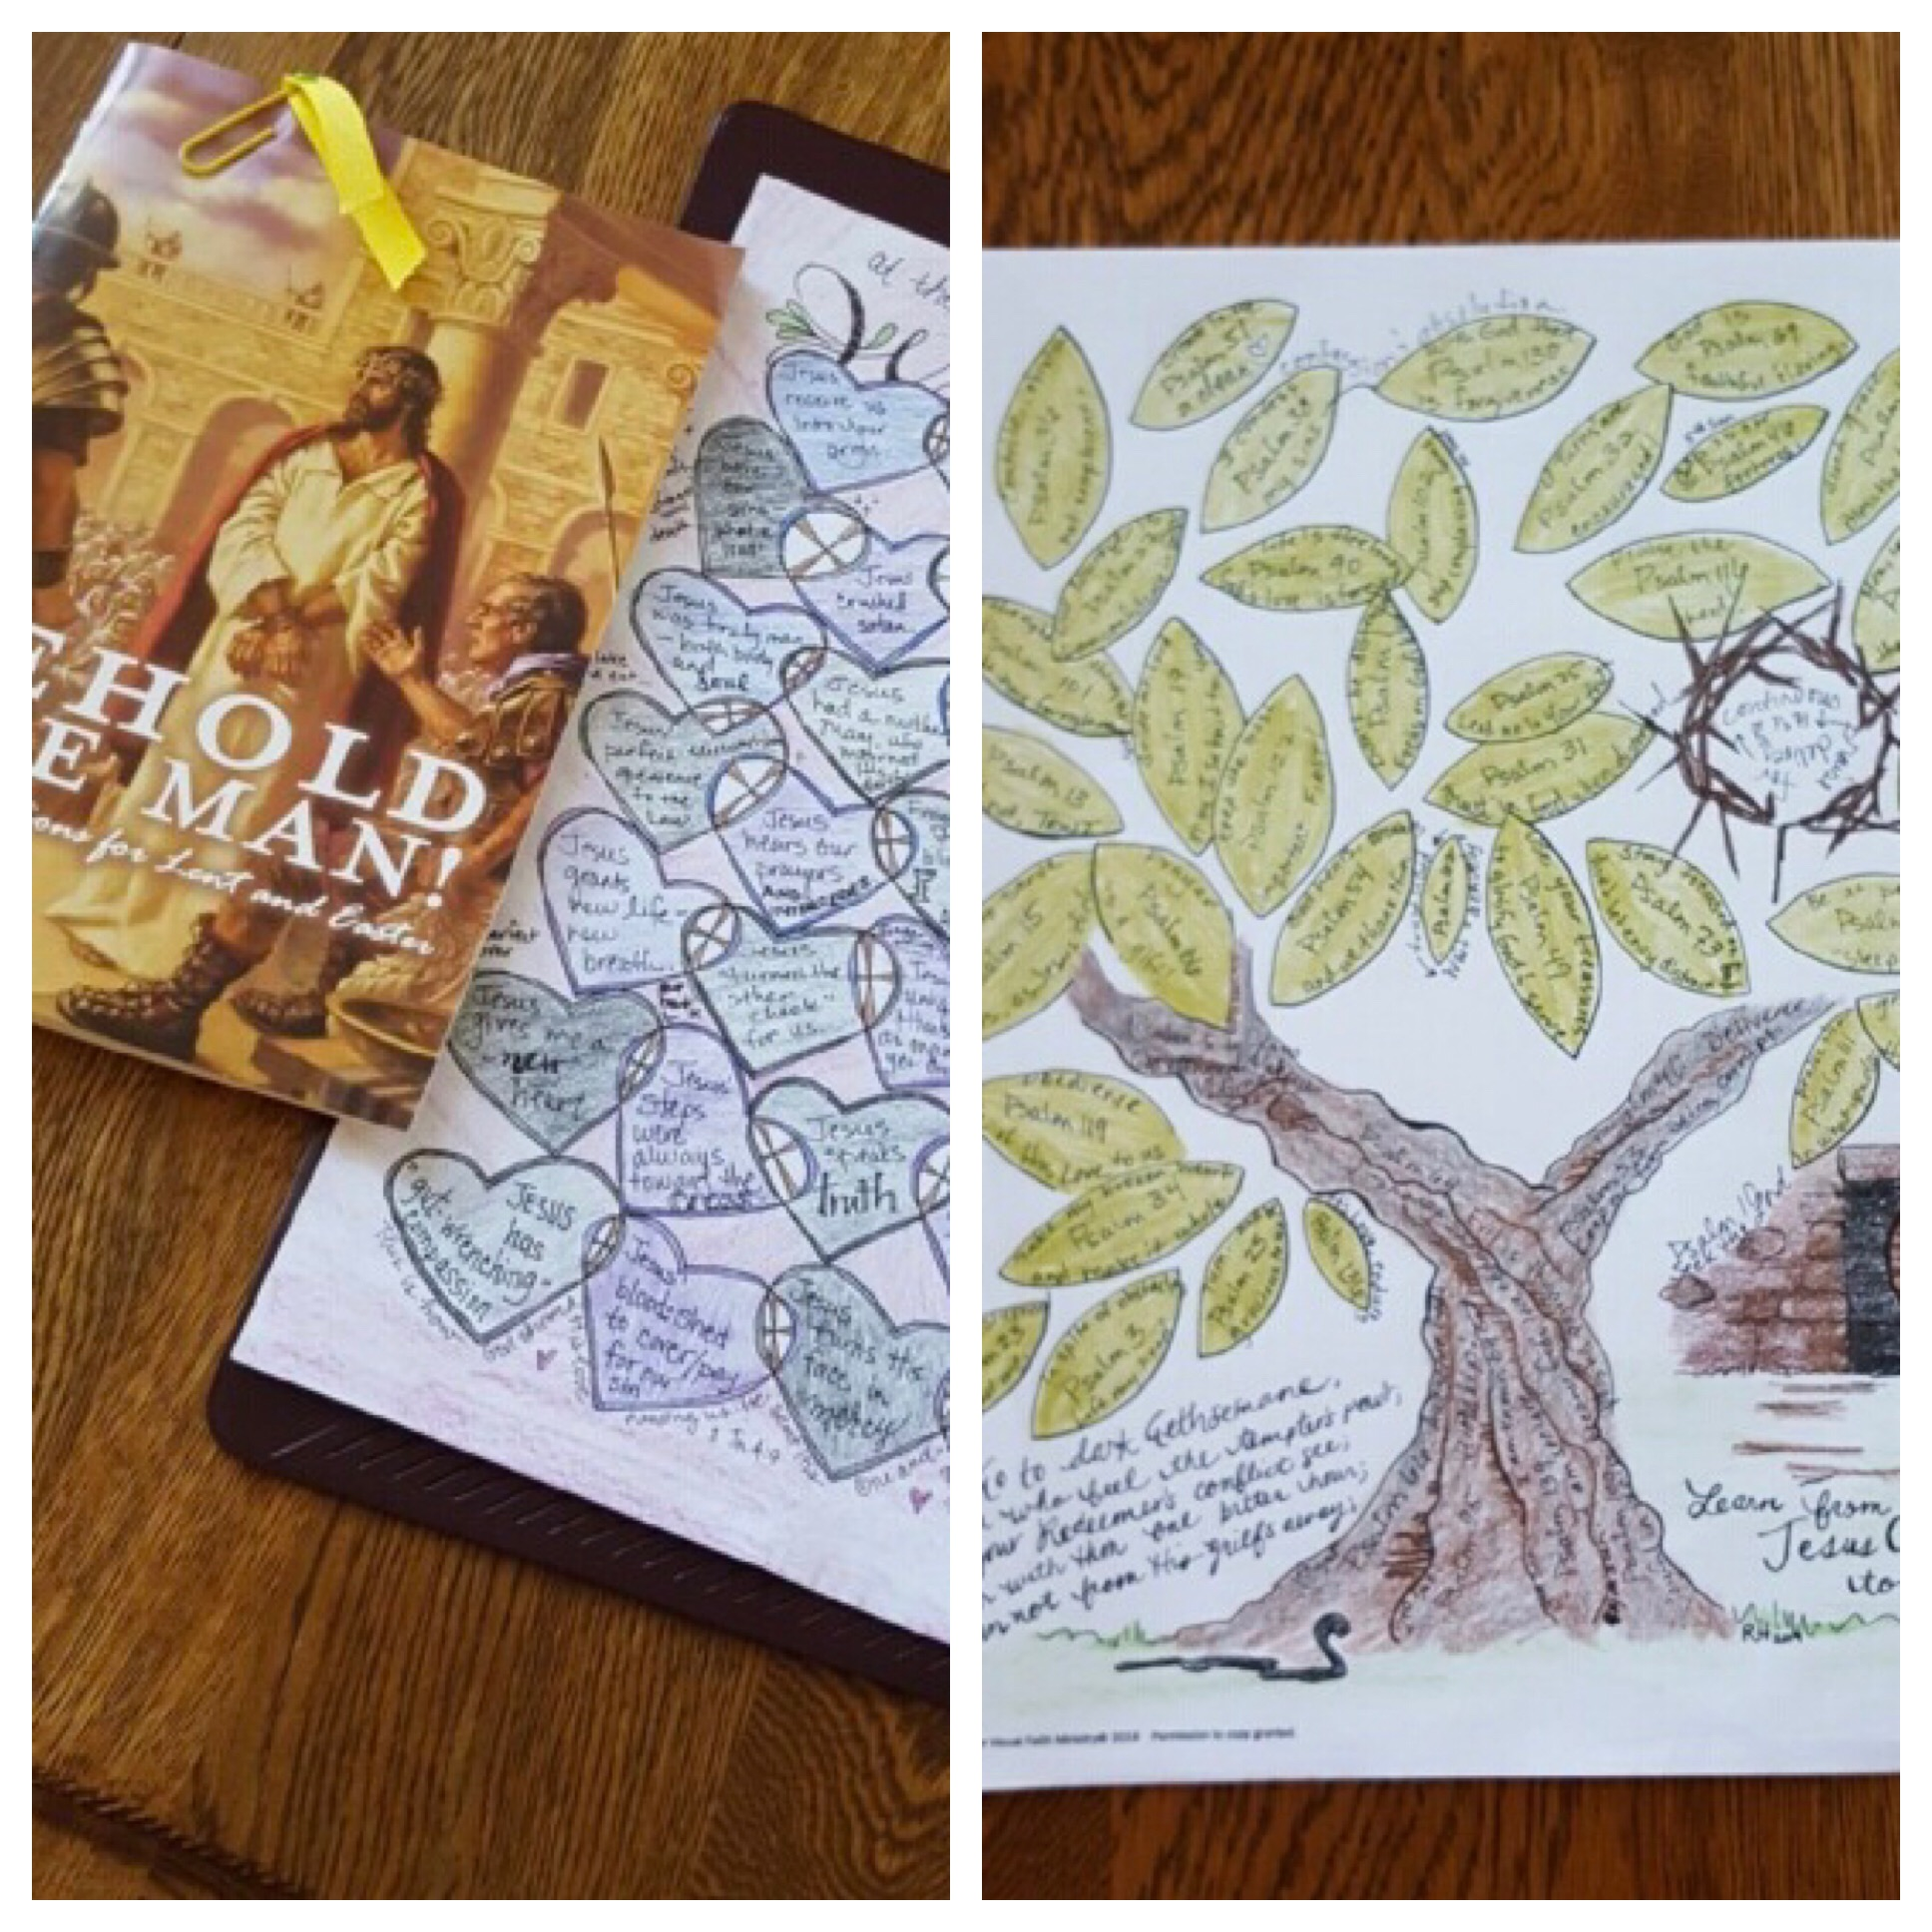 Books, blog posts and short Lent devotional readings can all be the stimulus for collecting words and phrases for a calendar. The time spent coloring allows the space for the Holy Spirit to help make the application to our own lives. Thanks to Visual Faith coach- Eden Keefe- for sharing her images.